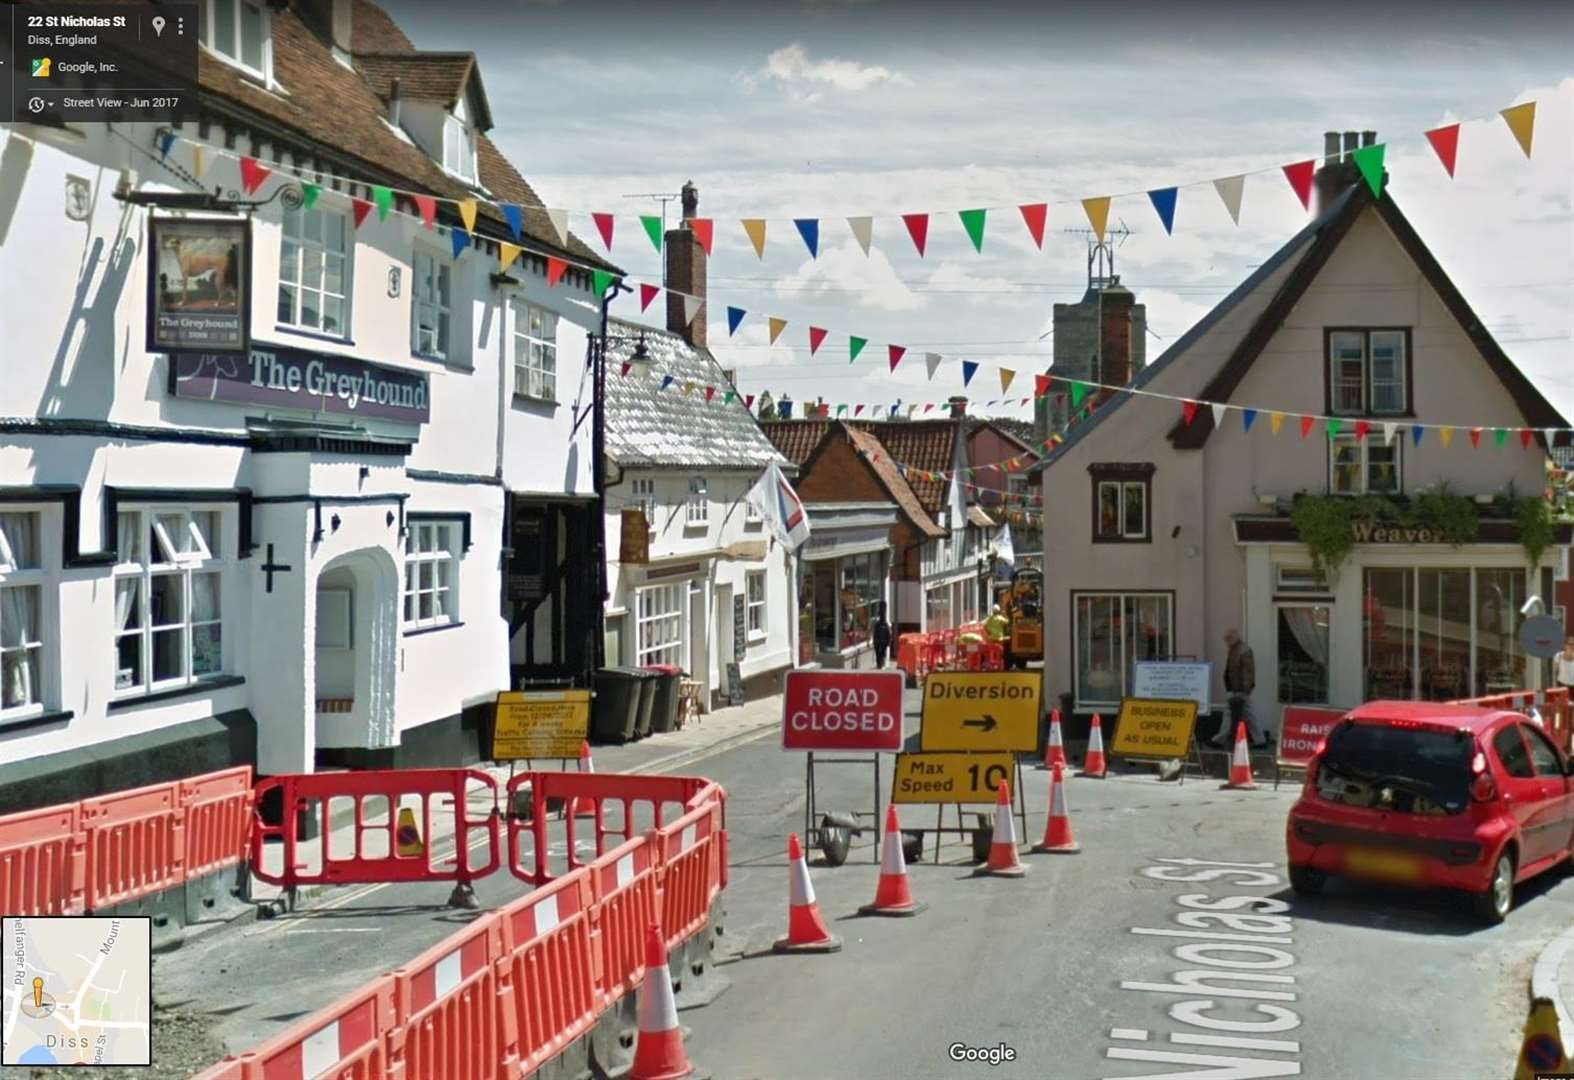 Google Street View images show town in chaos